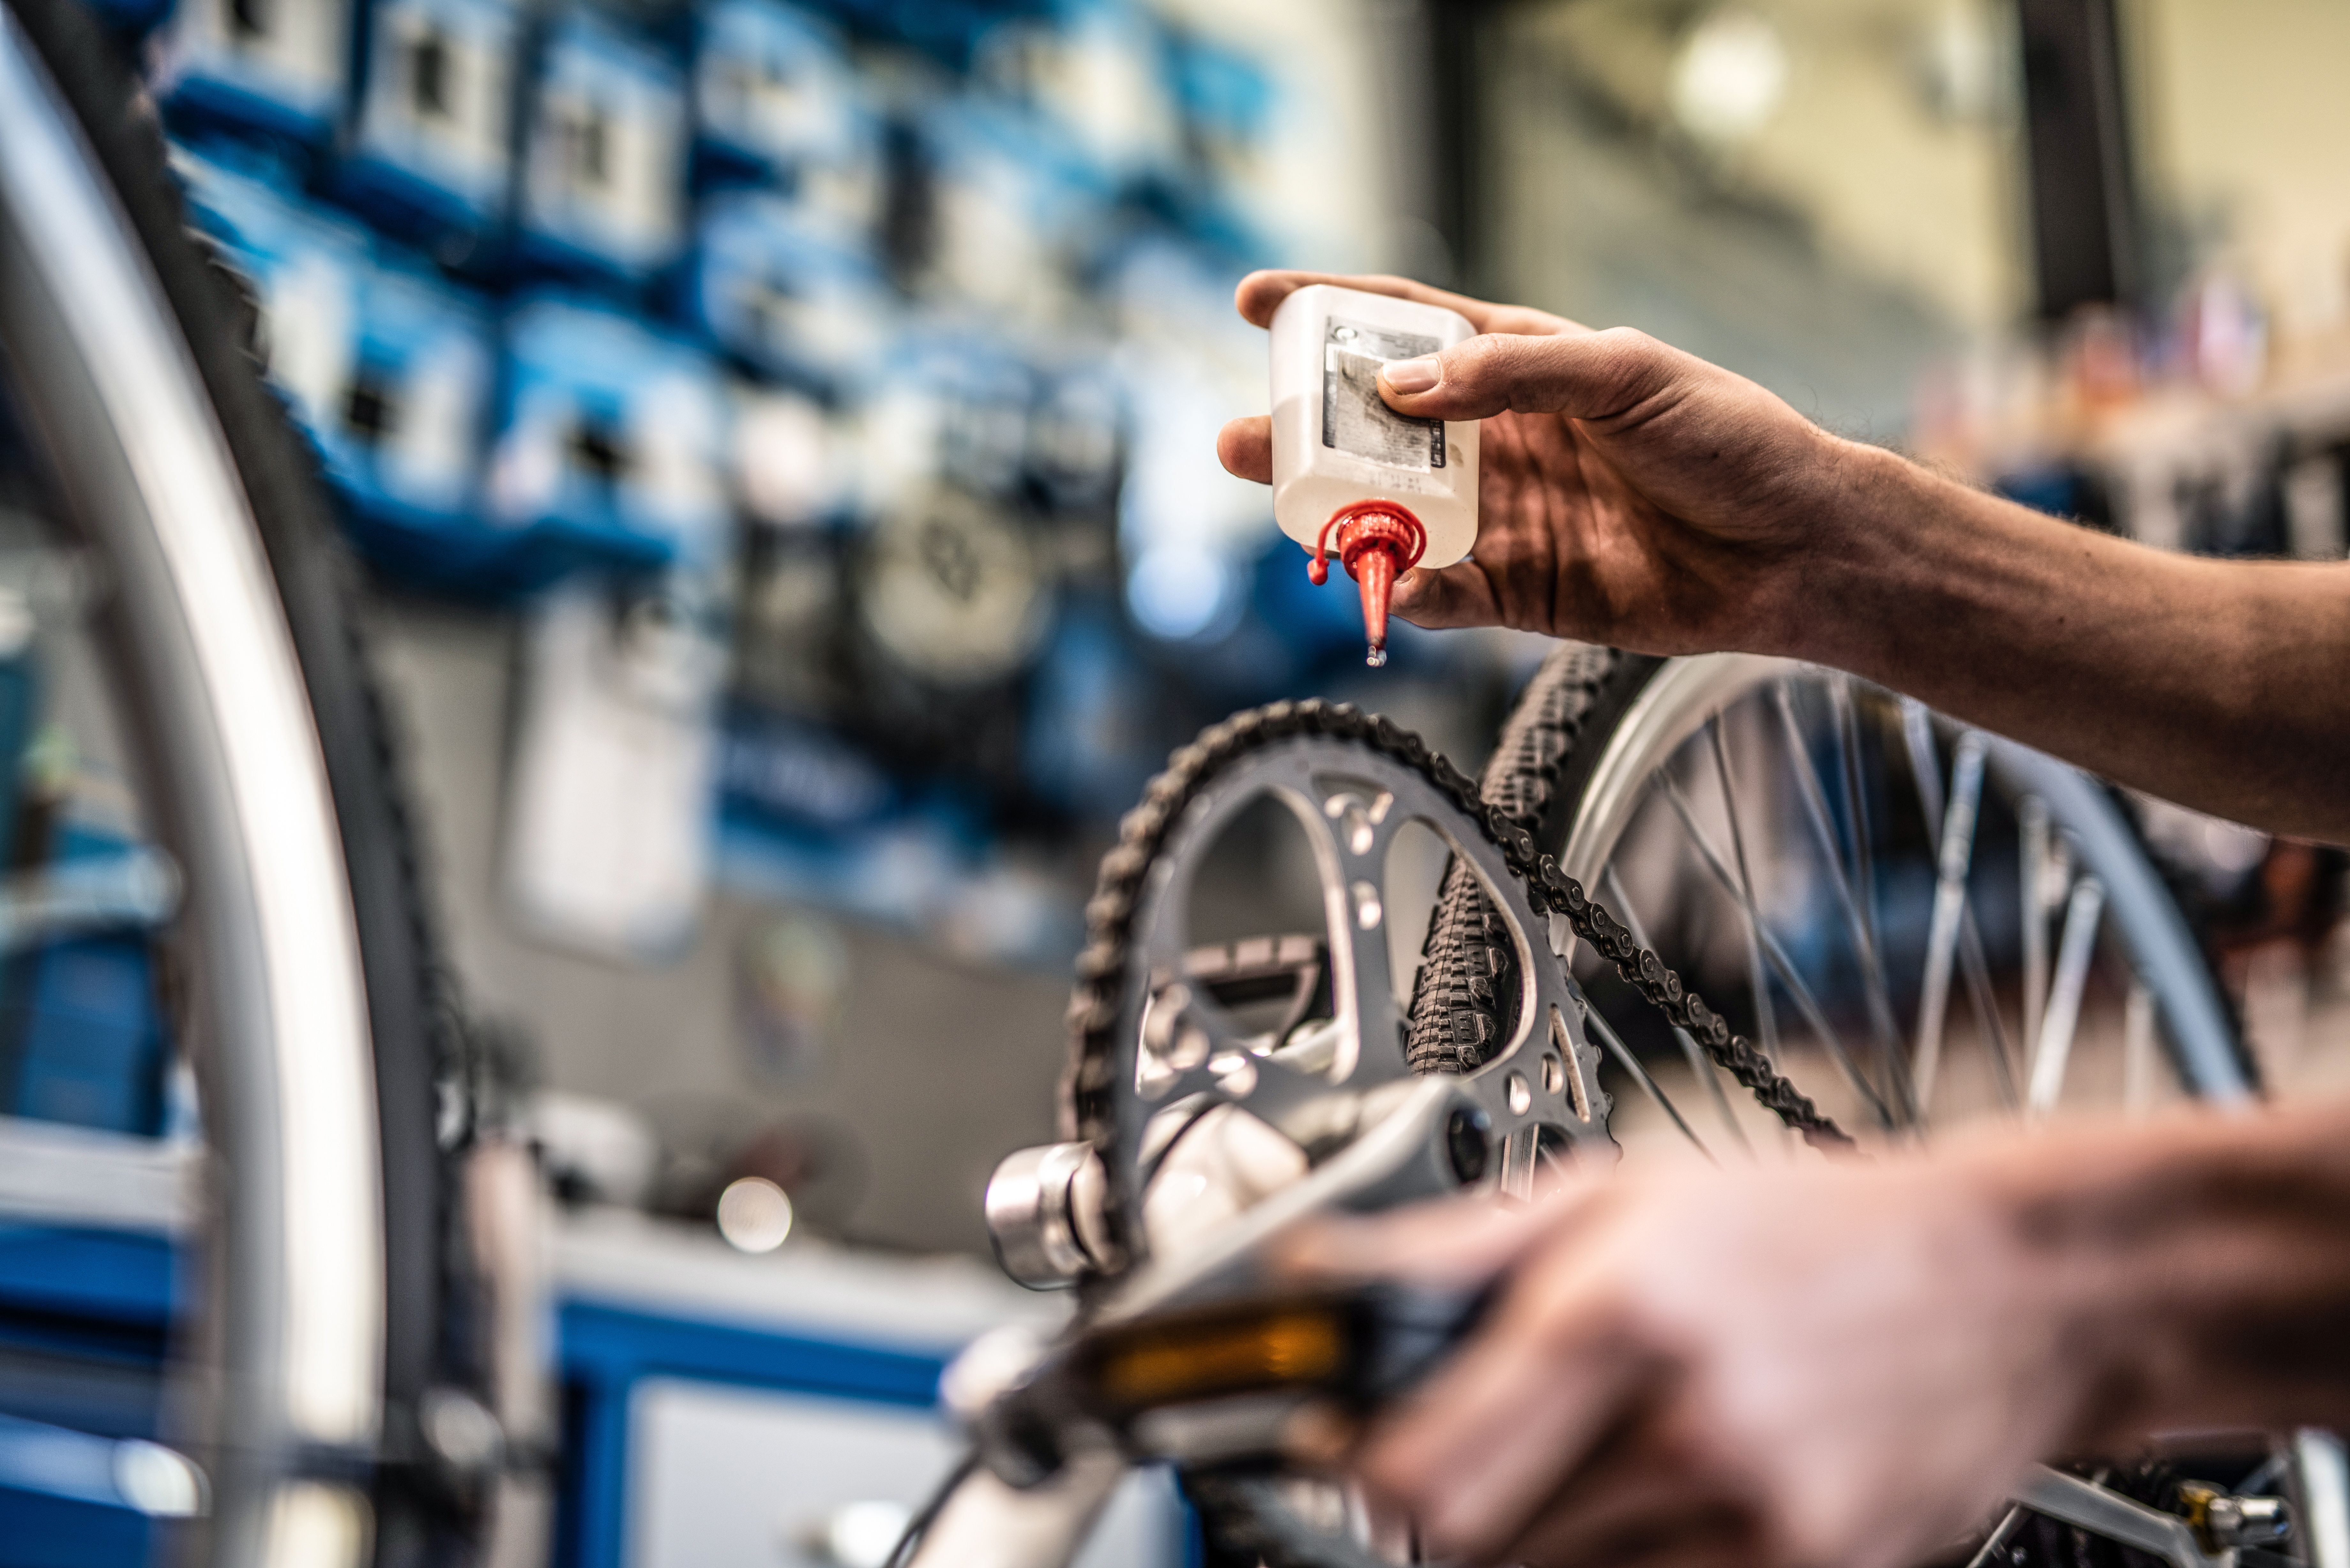 Hands fixing a bike